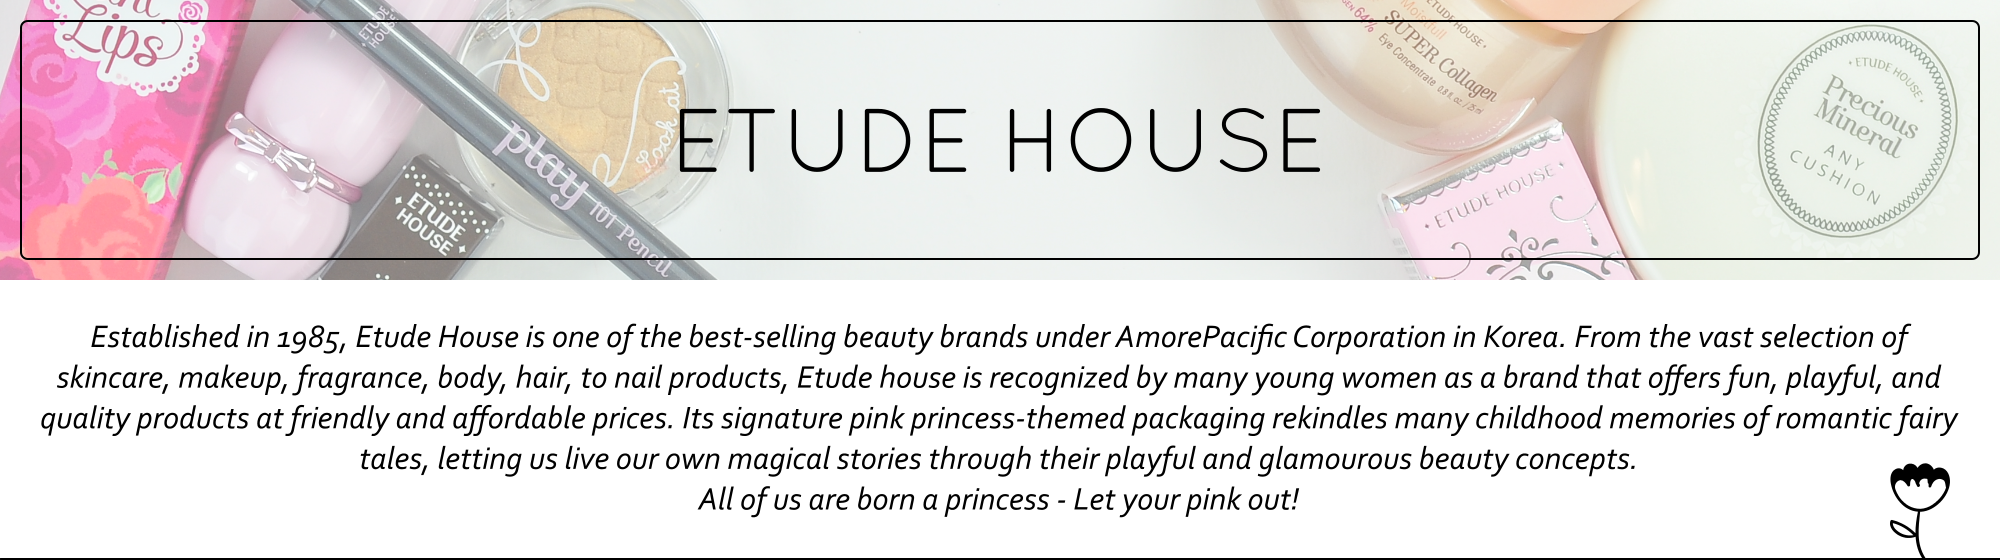 Shop Etude House and Korean cosmetics, makeup, and skincare at great prices! Ships from Vancouver BC. Available online in Canada and U.S. with free shipping!